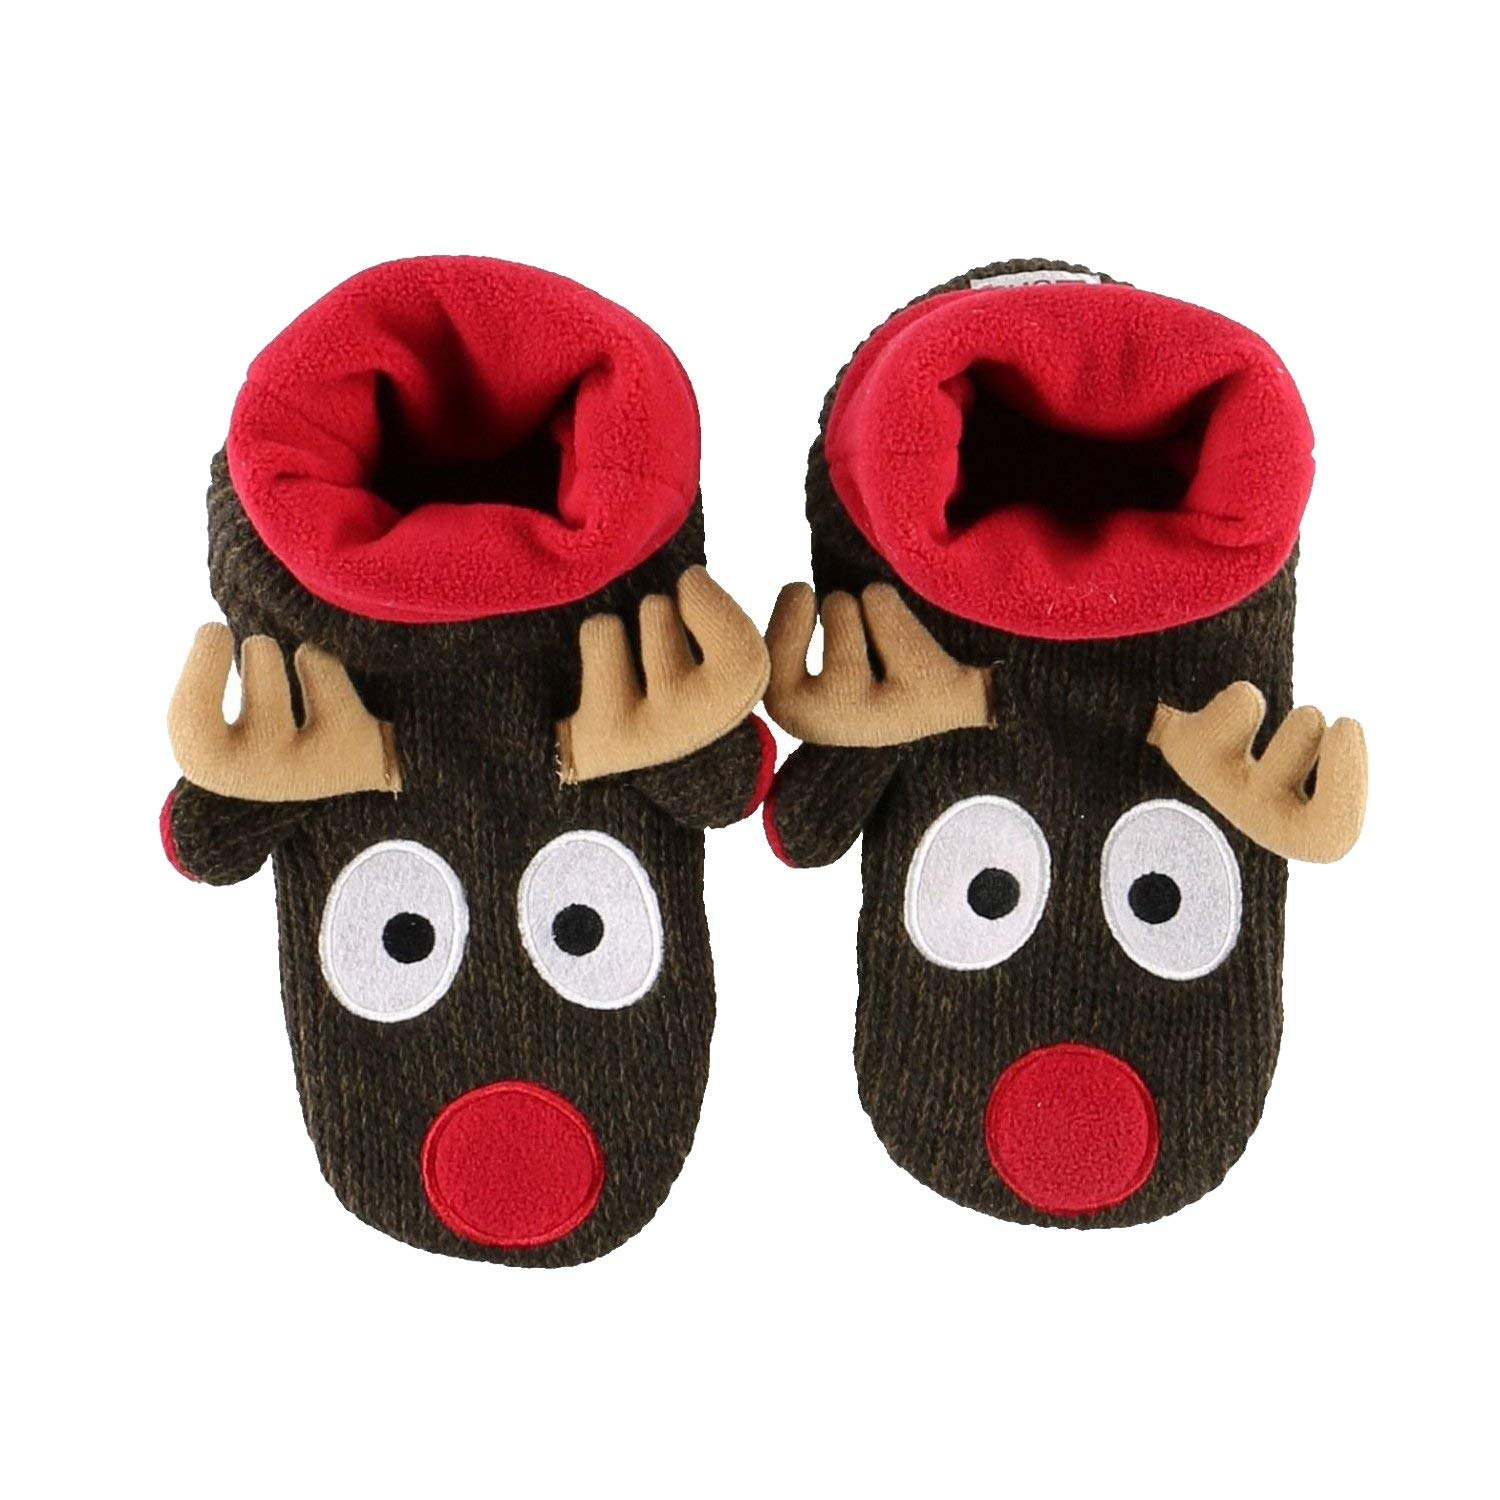 37db522e4d7b Get Quotations · Slipper Woodland Animal Character Slippers by LazyOne